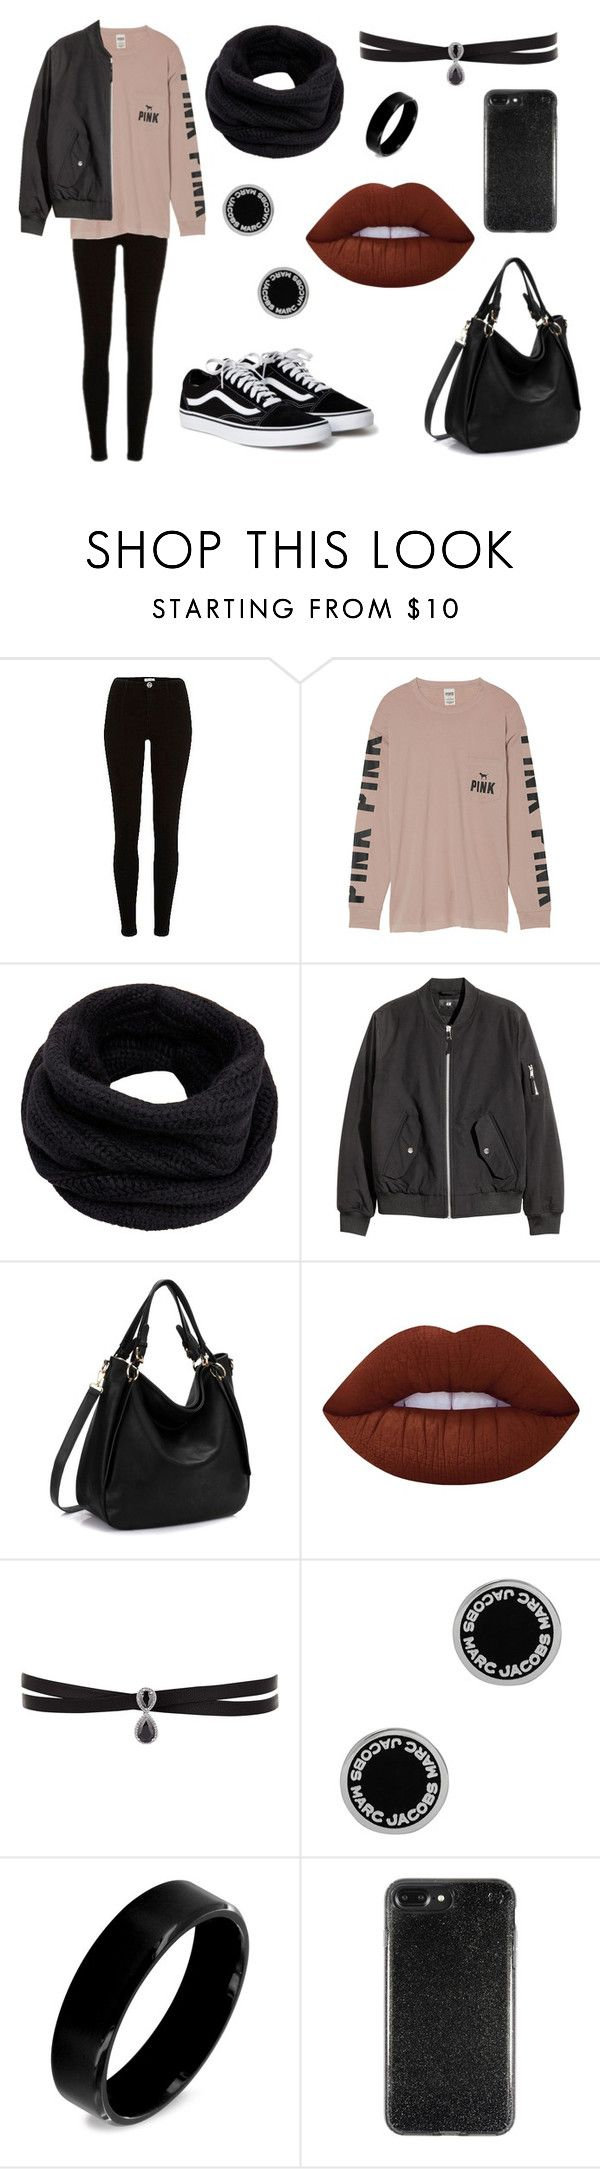 """Untitled #332"" by fashion-with-dudette on Polyvore featuring River Island, Victoria's Secret, Helmut Lang, Lime Crime, Fallon, Marc Jacobs and West Coast Jewelry"